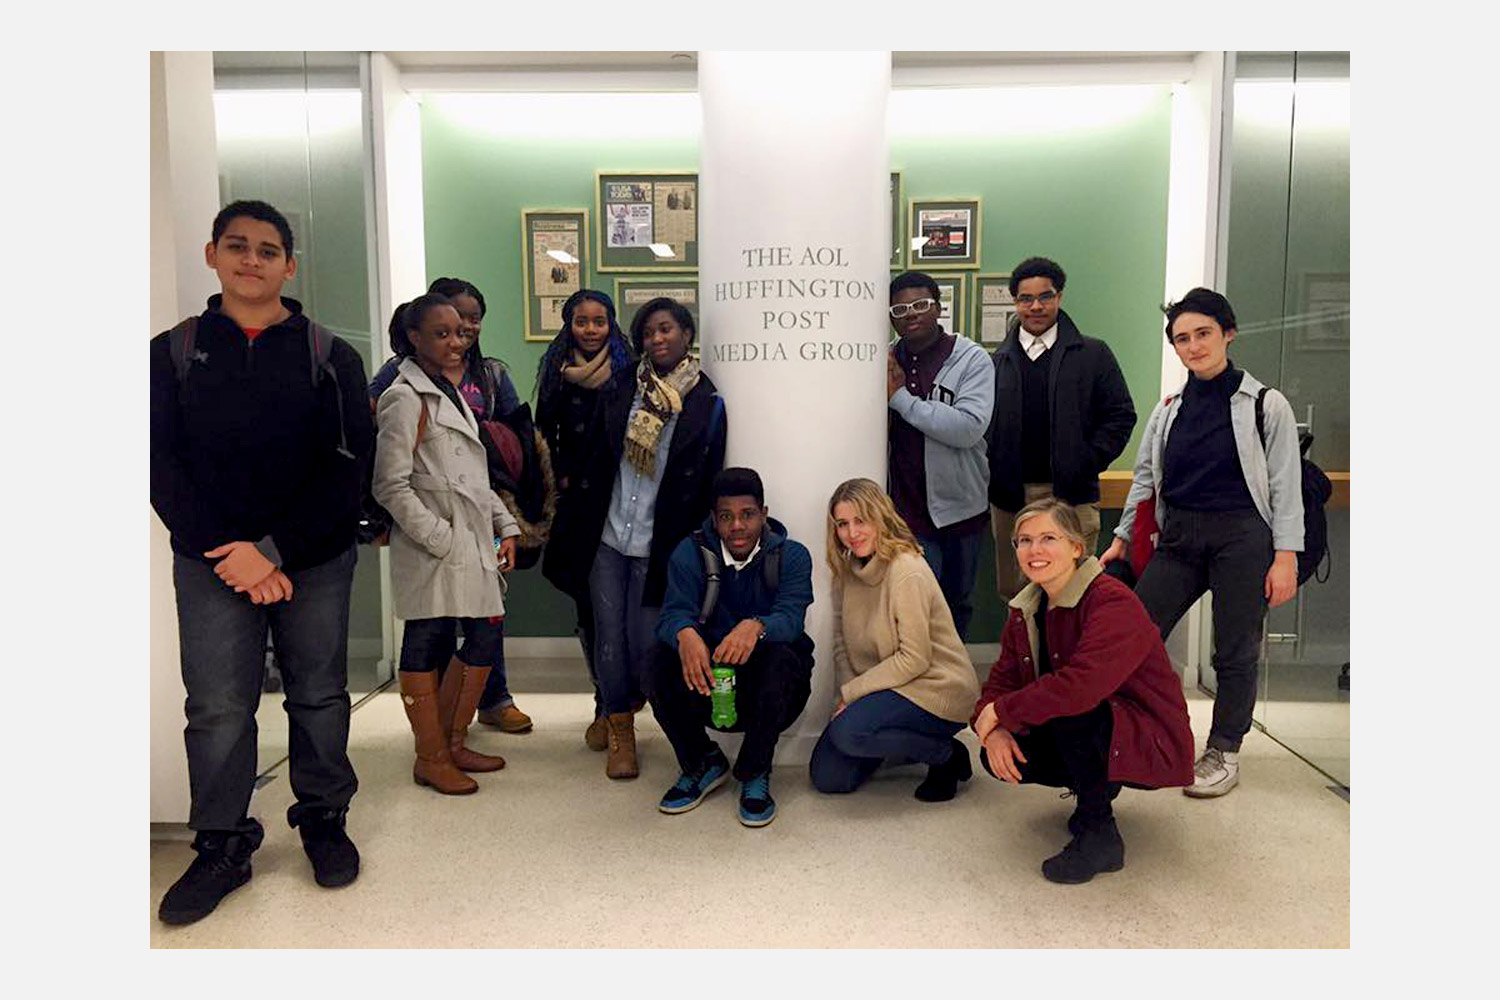 We visited  The Huffington Post  for our journalism workshop field trip.